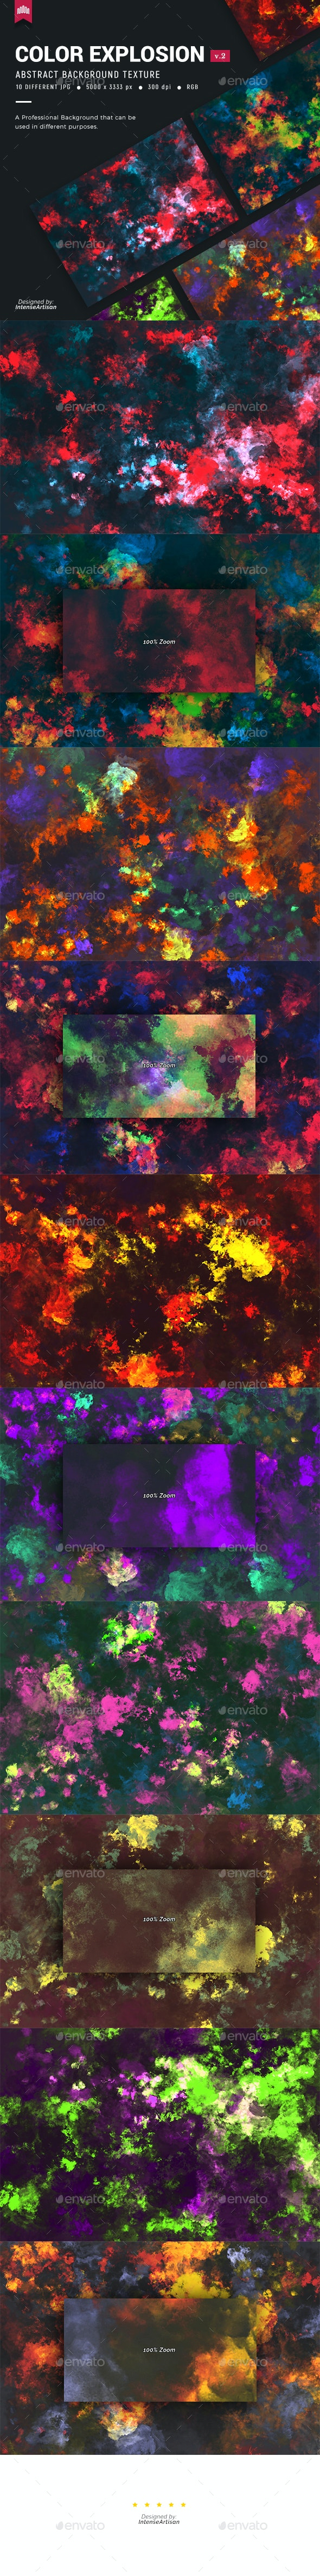 Color Explosion V.2 - Background - Abstract Backgrounds